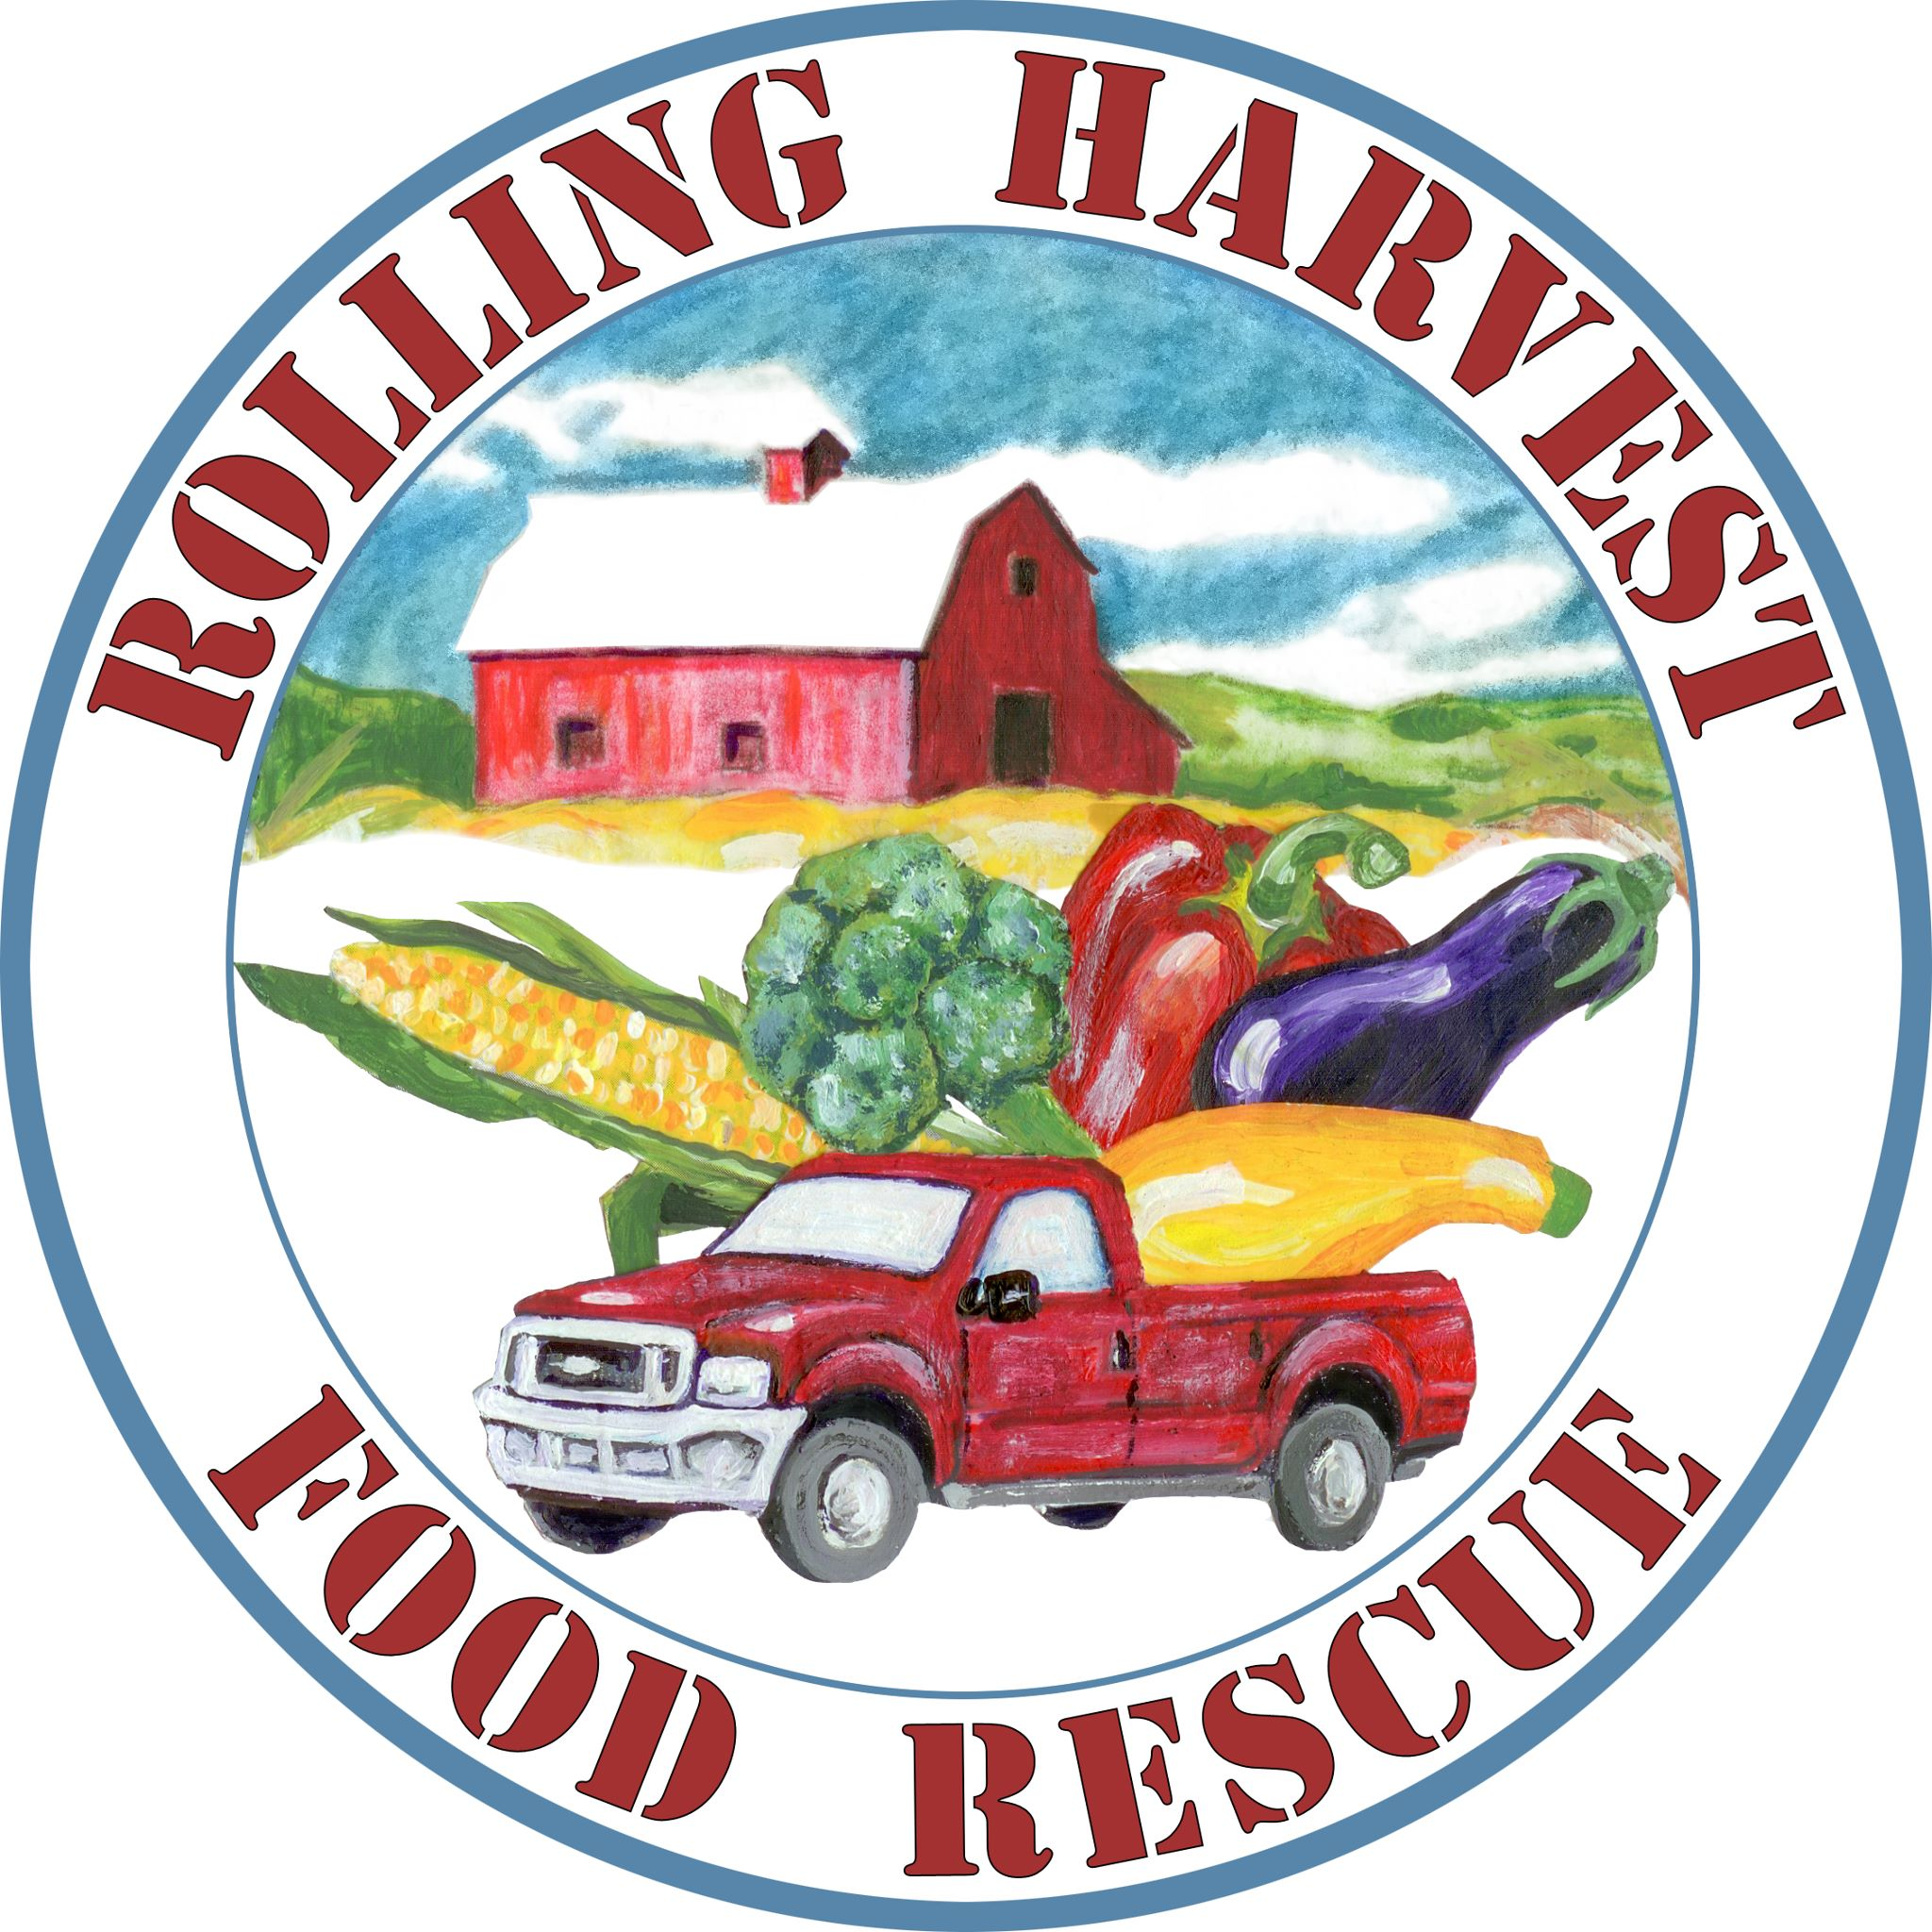 Non-Profit Farm Manager for Rolling Harvest Food Rescue